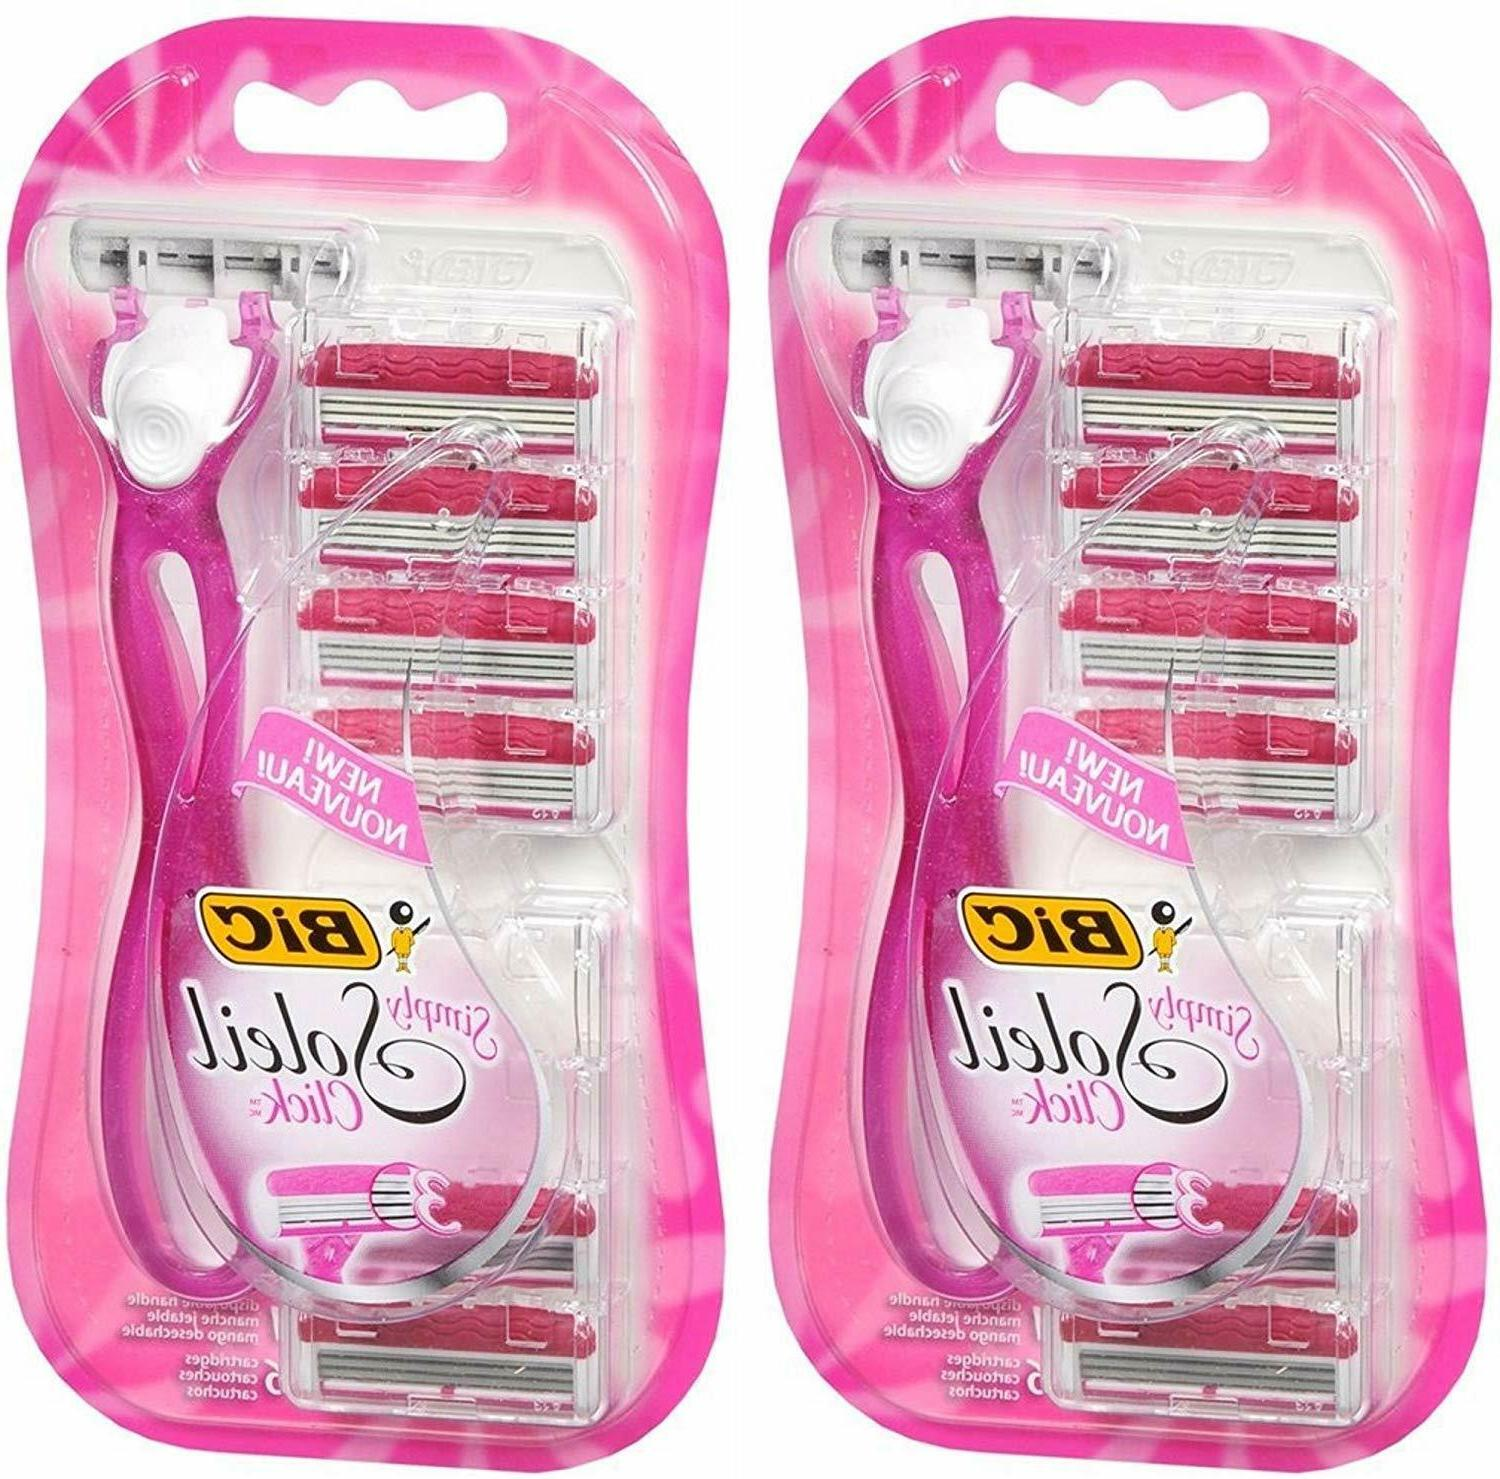 NEW - BIC Simply Soleil Click for Women - 6 Cartridges + 1 H